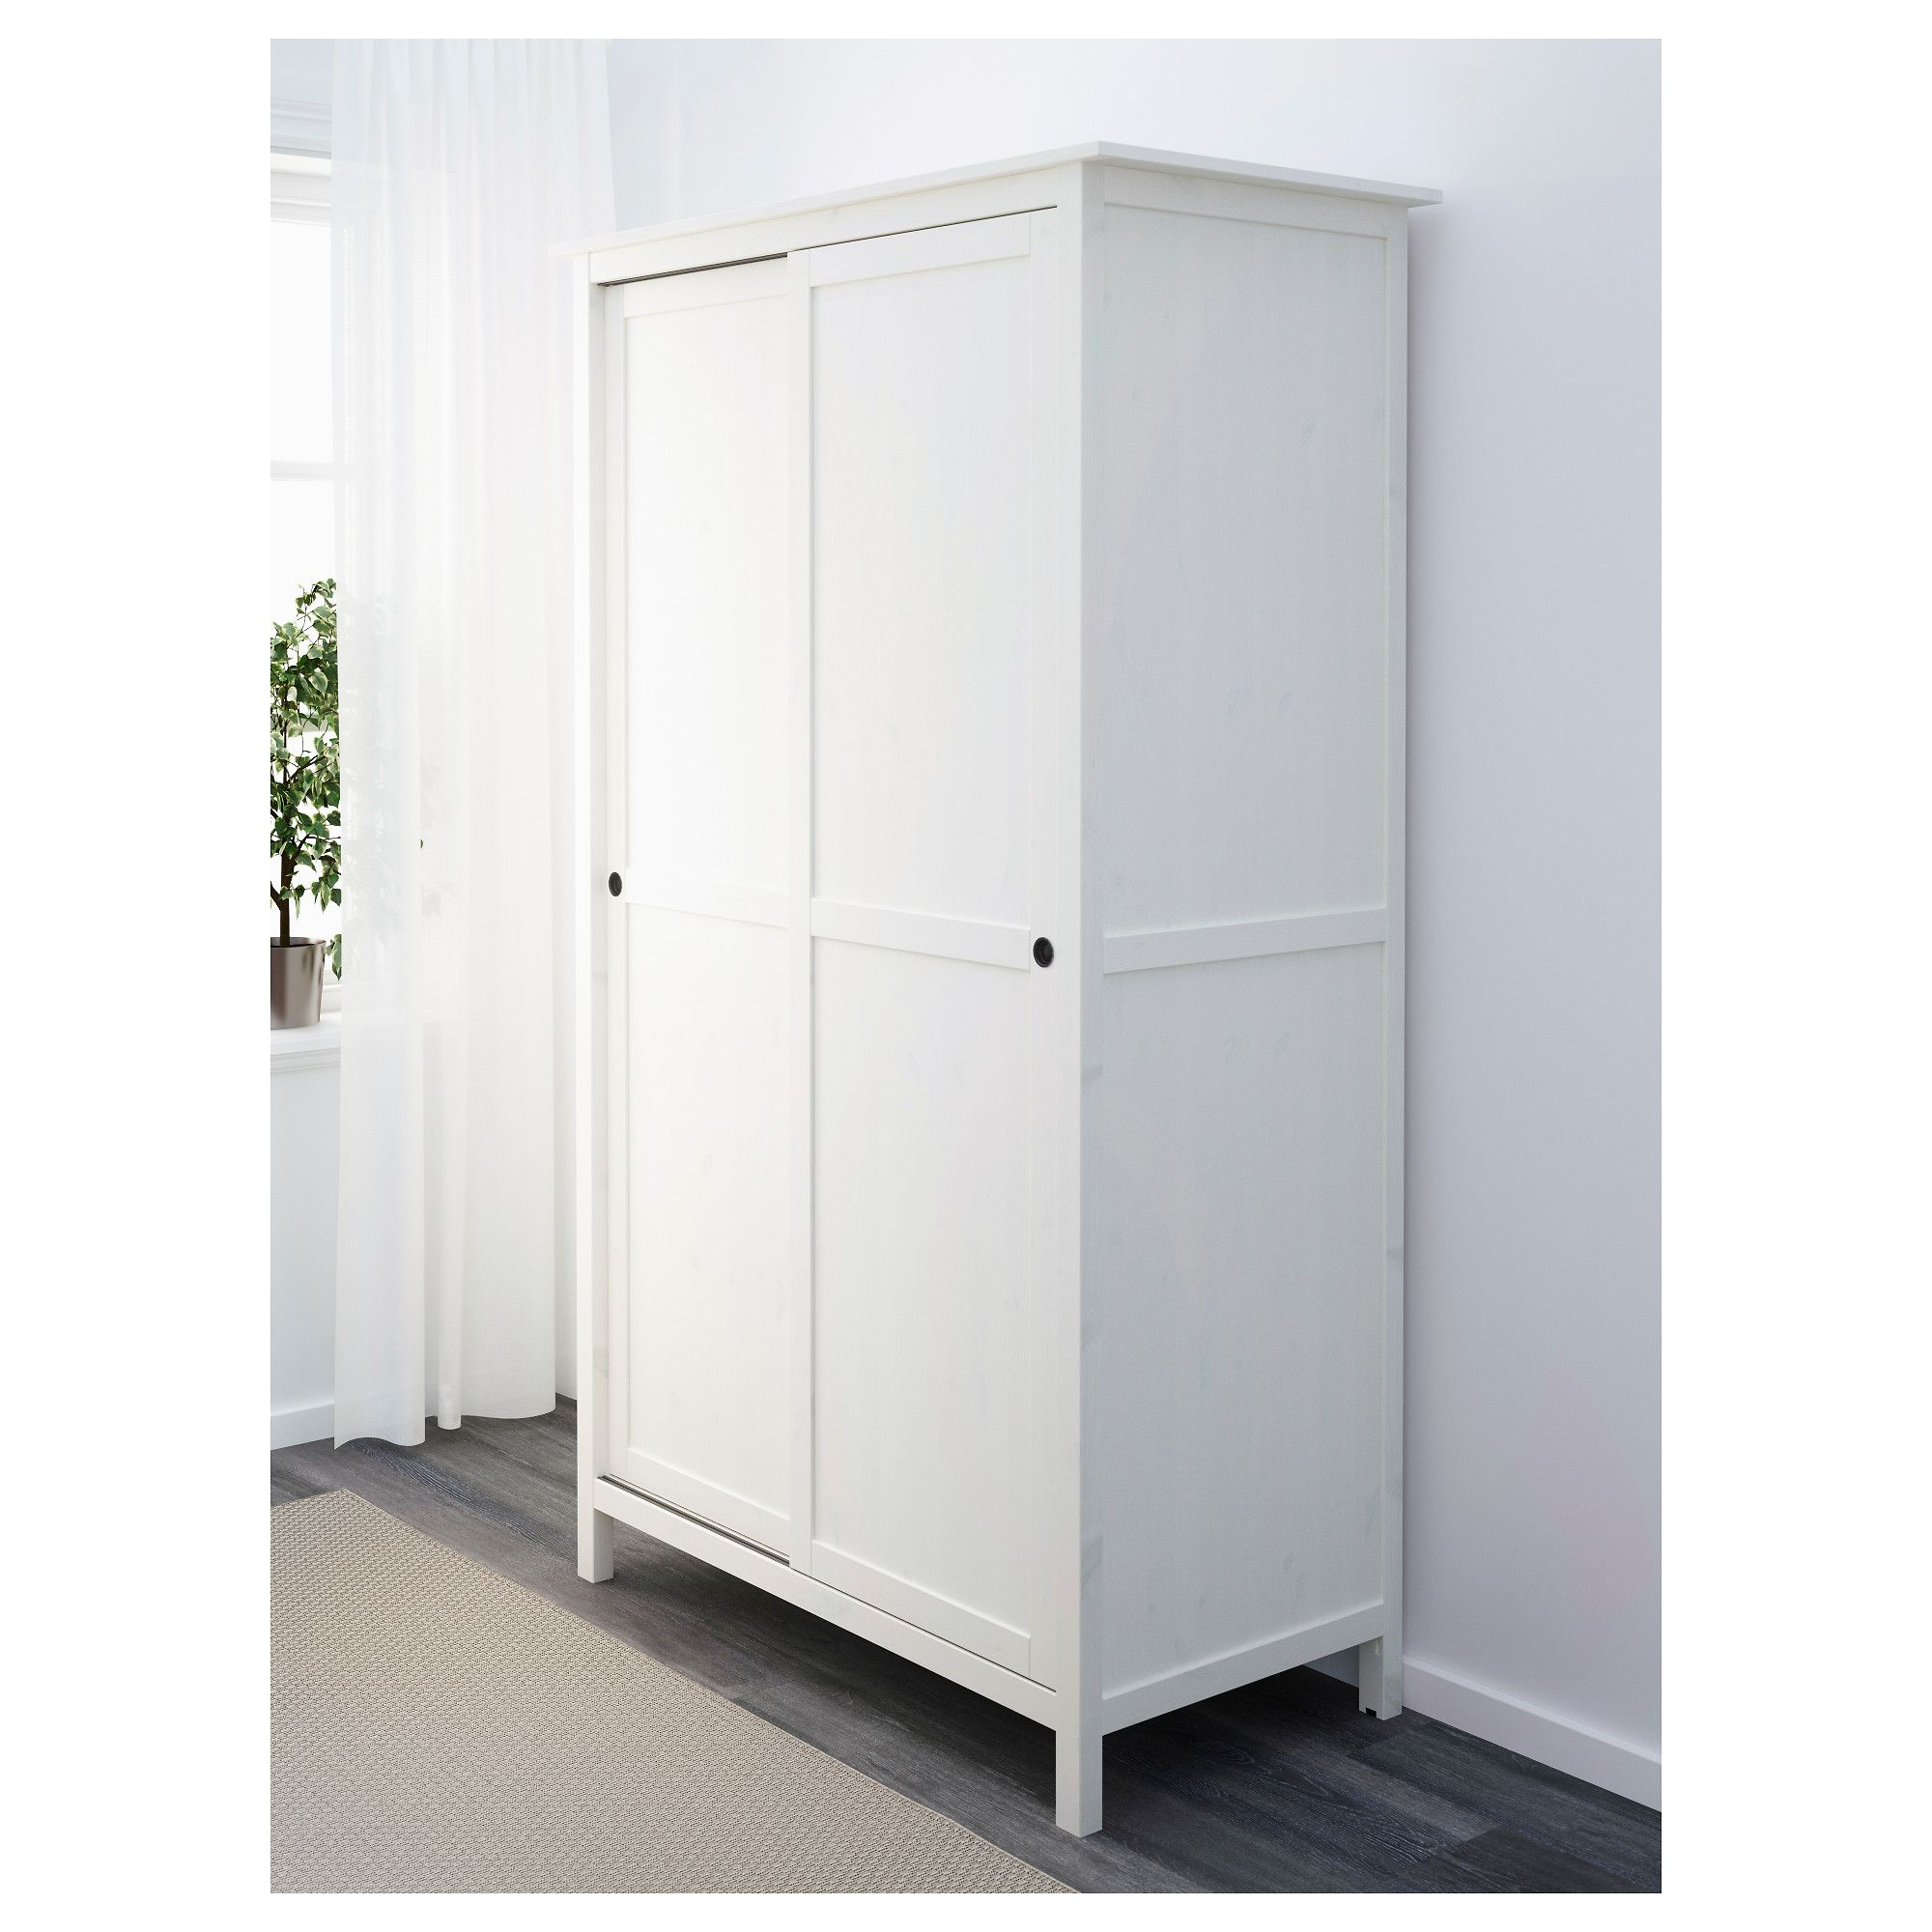 wardrobe collection standing white container wardrobei uk wardrobes triple camden store free freestanding cookes